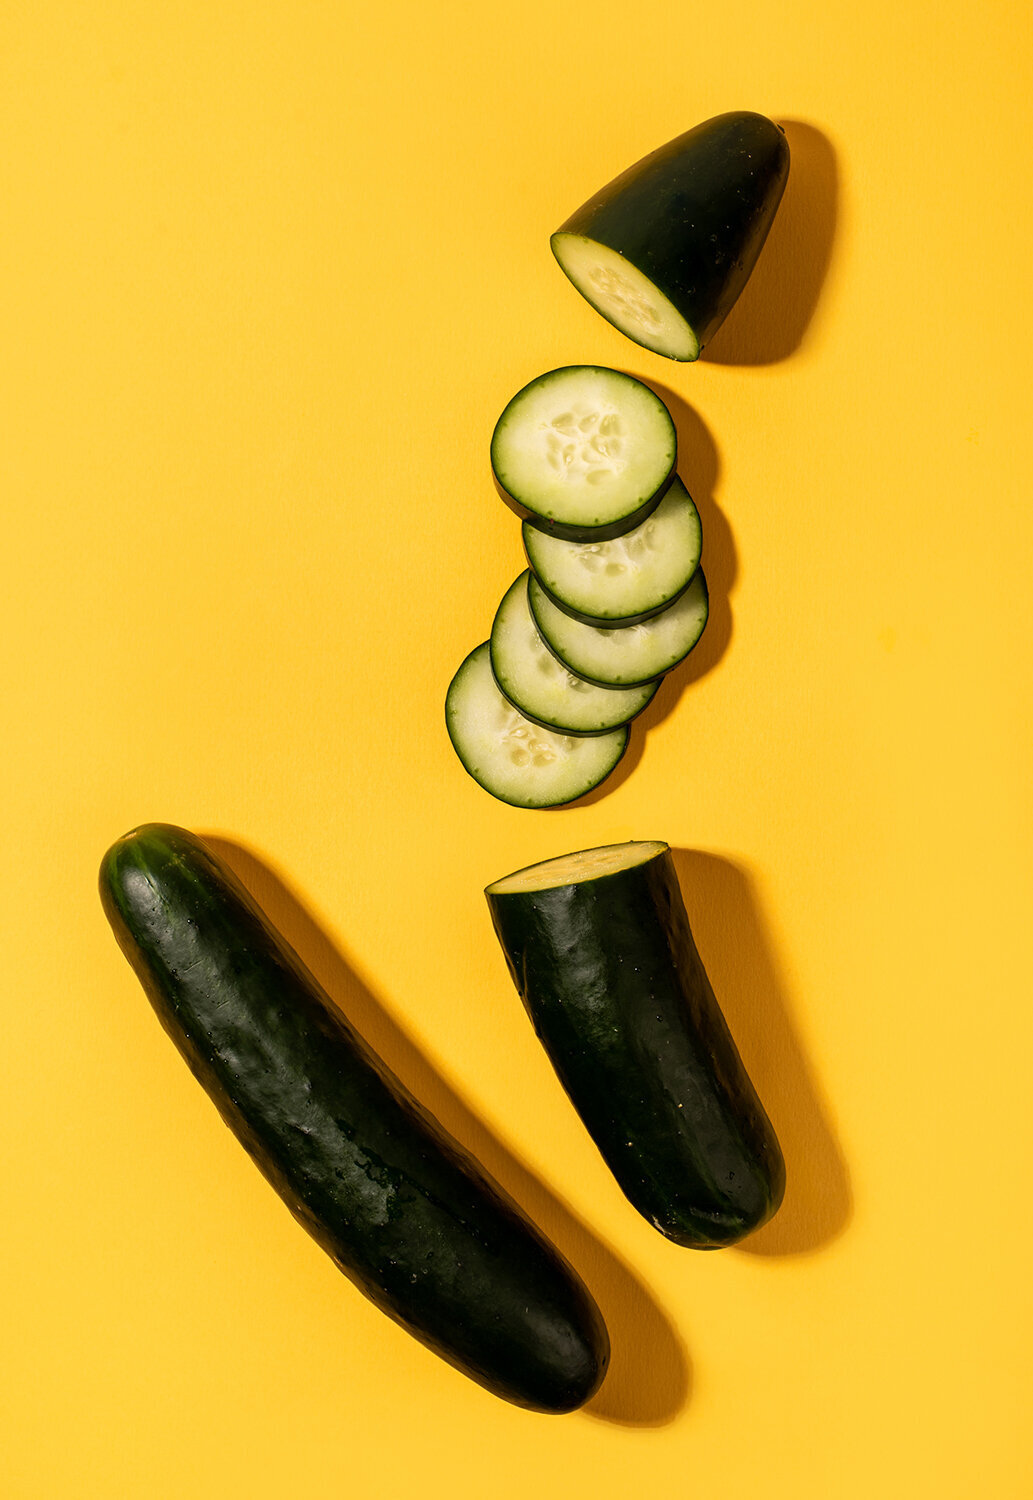 los angeles food photographer produce photography cucumber